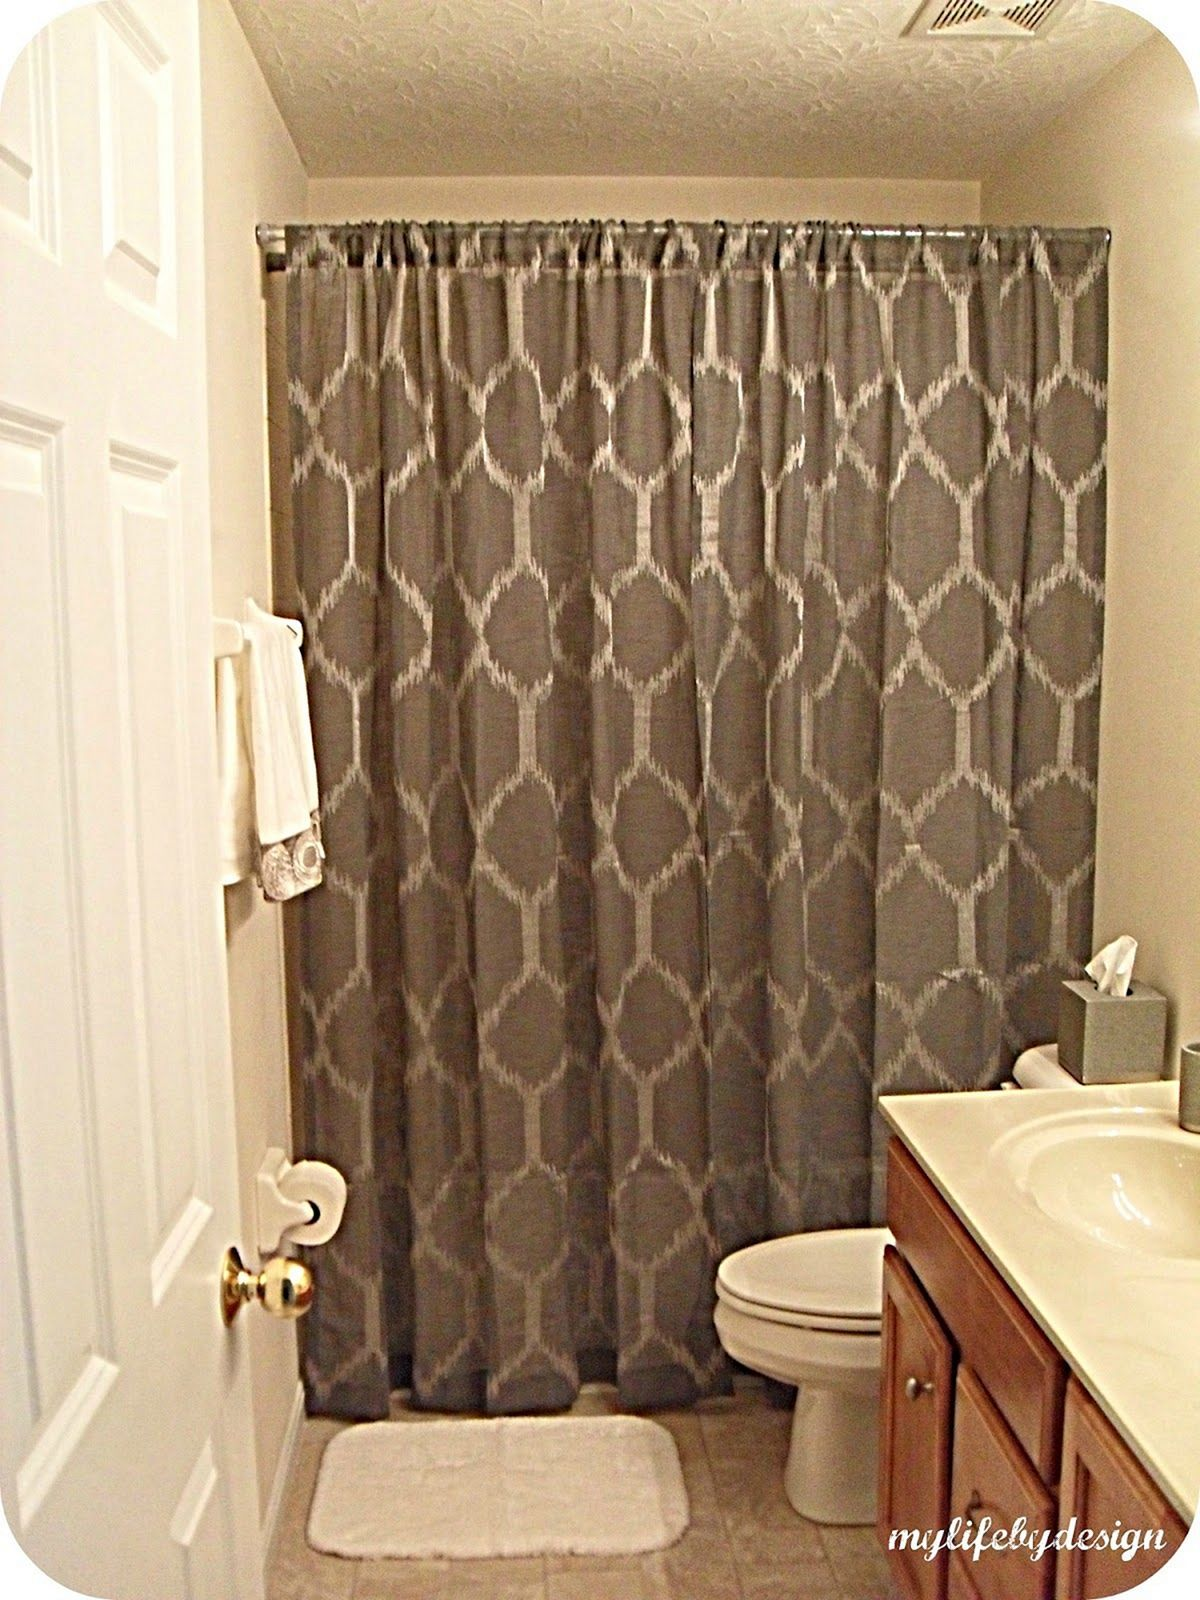 5 Gorgeous Bathroom Shower Curtain Ideas Bathrooms Shower Curtain Lengths Bathroom Shower Curtains Shower Curtain With Valance